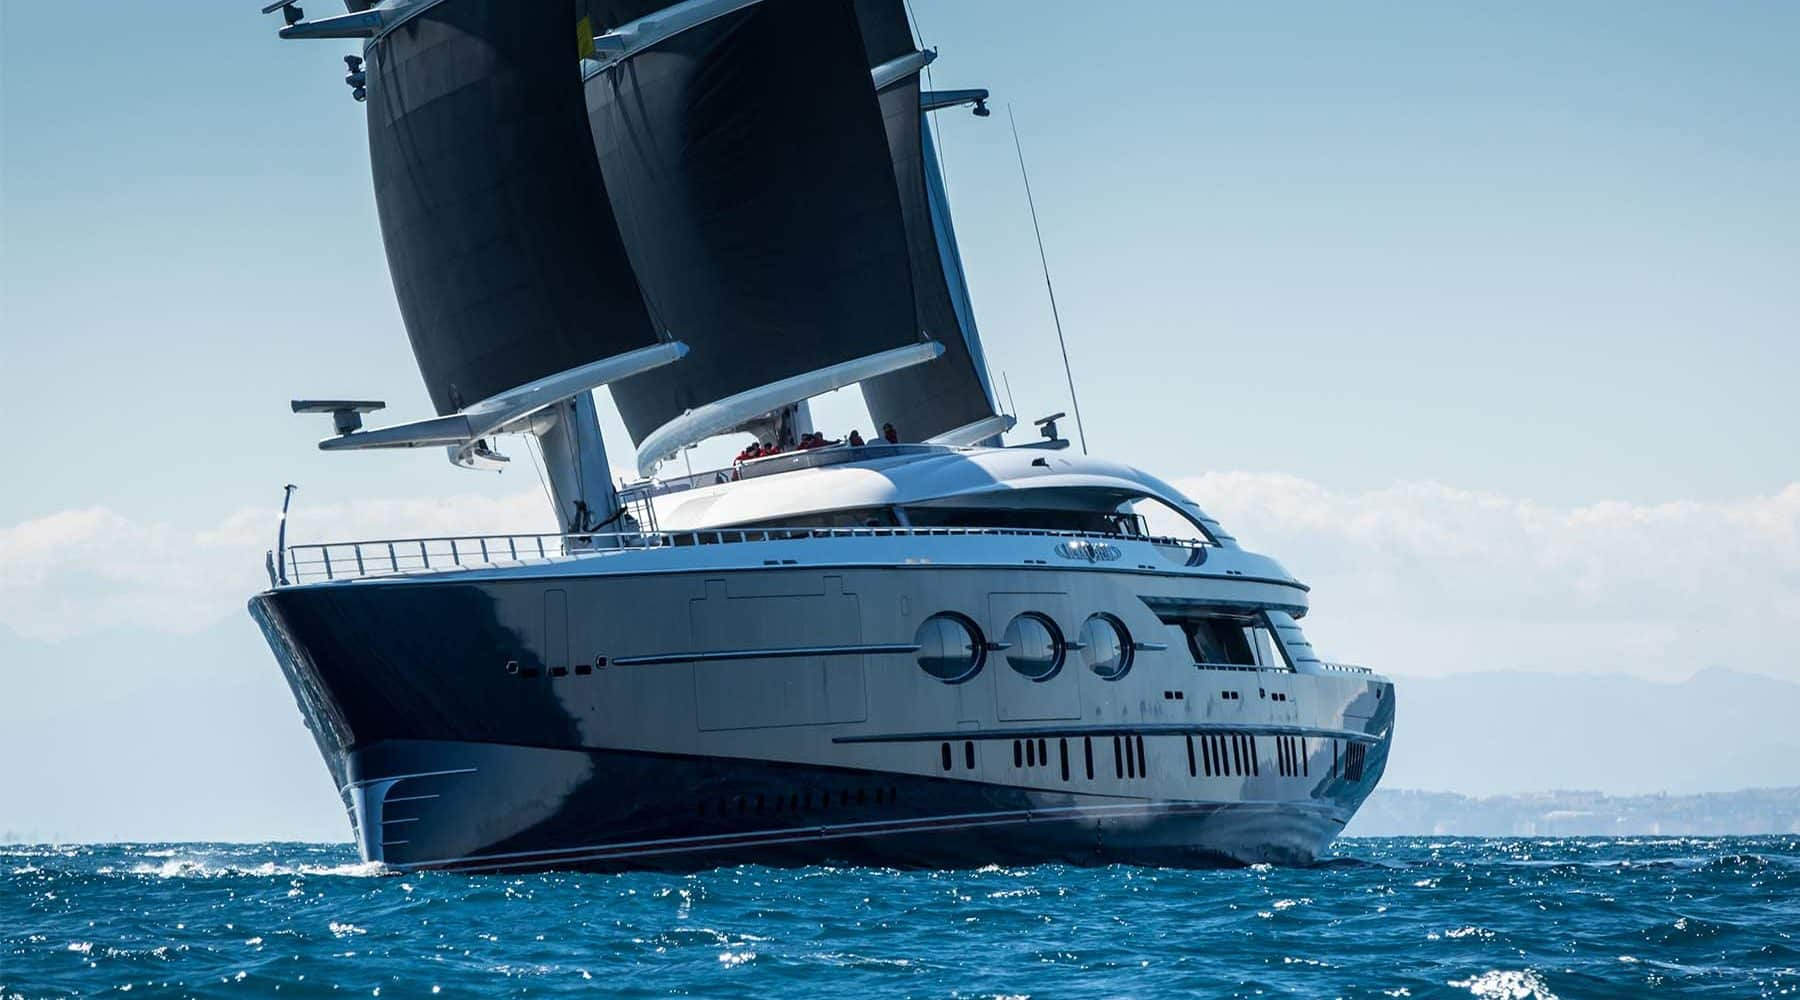 Oceanco's Black Pearl: The Largest Dynarig Sailing Yacht in